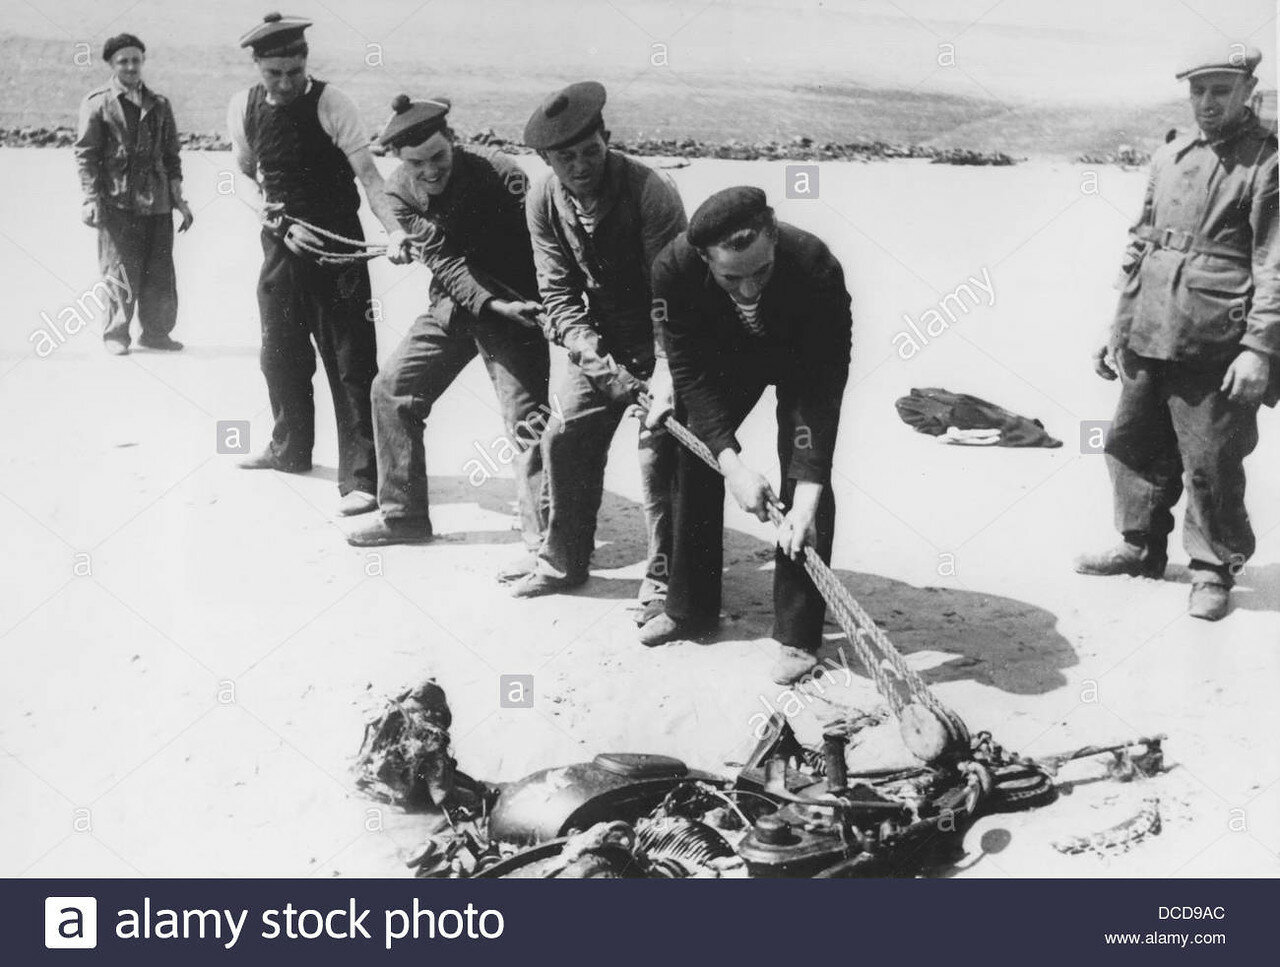 french-prisoners-of-war-clean-up-the-beach-of-dunkirk-in-france-on-DCD9AC.jpg